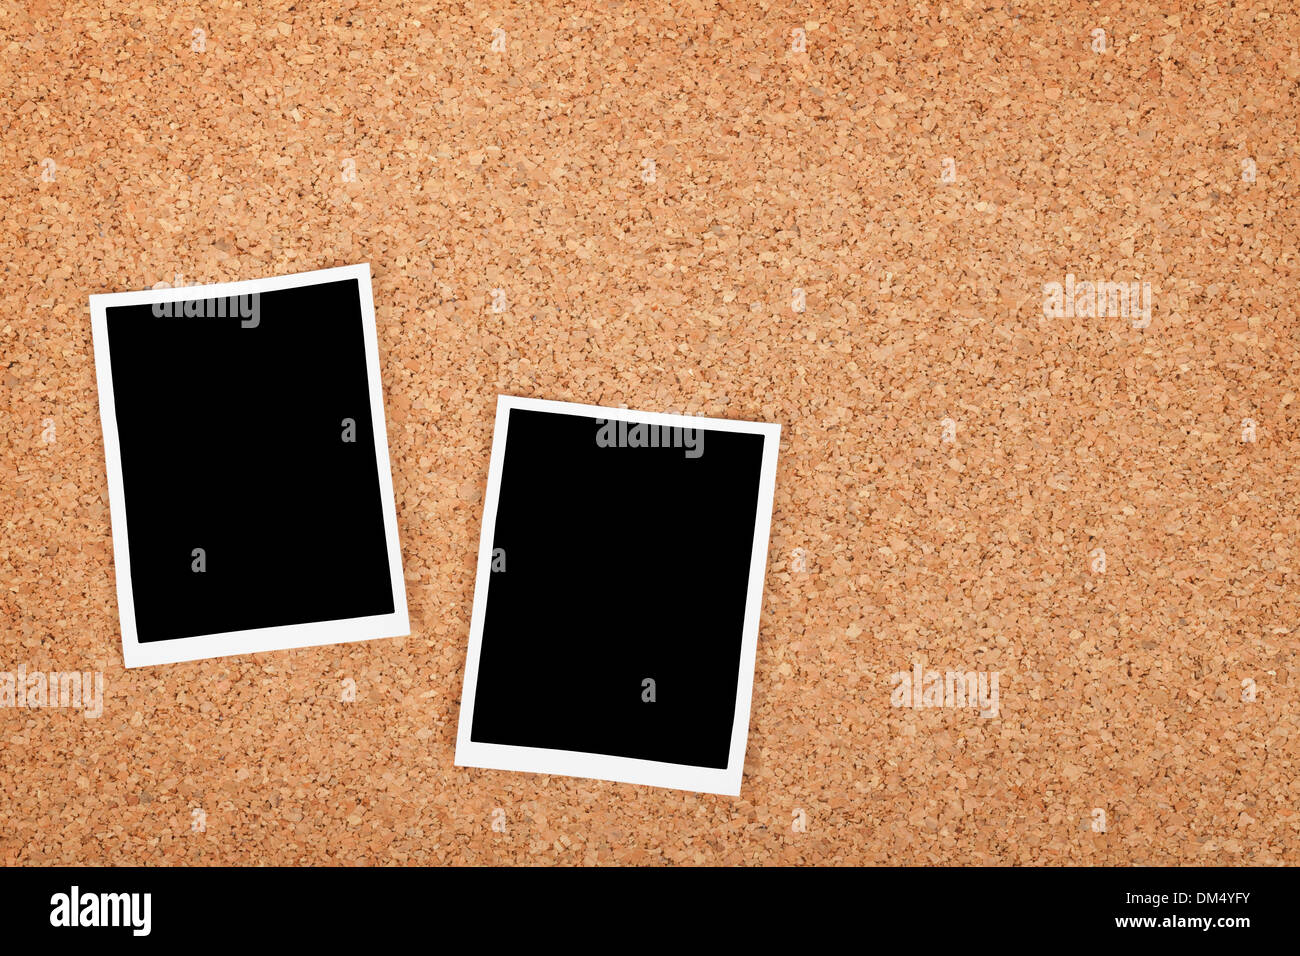 Polaroid photo frames on cork texture background with copyspace - Stock Image